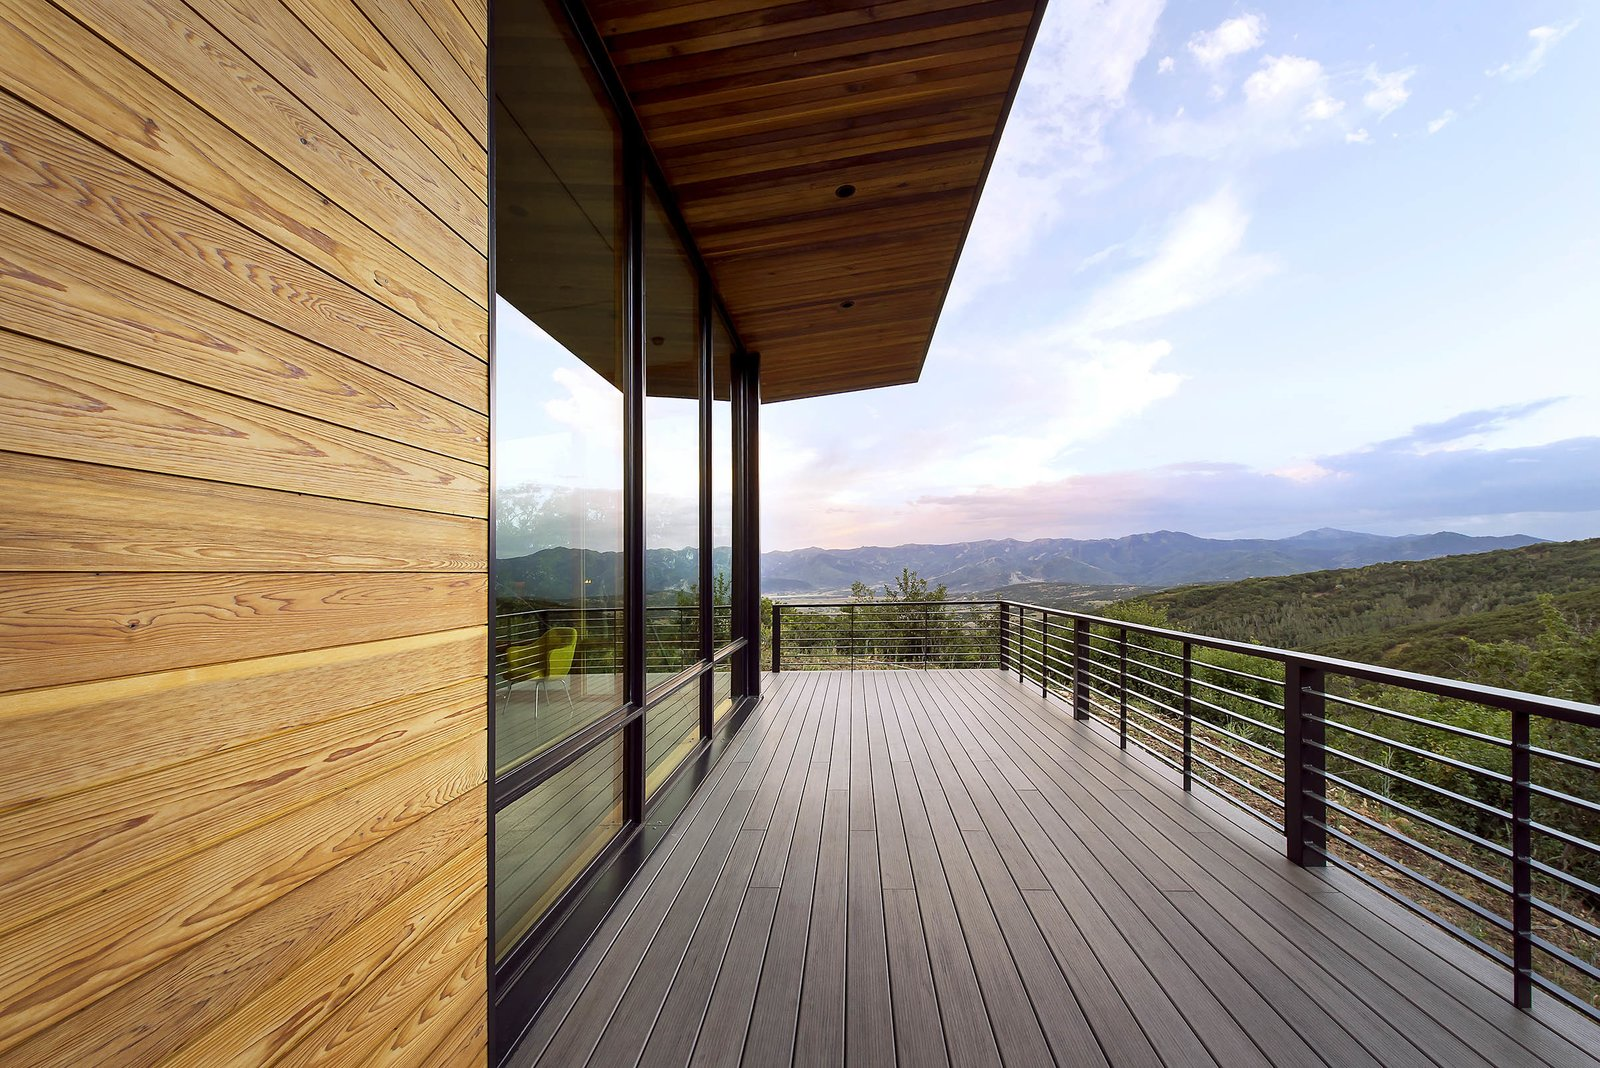 Outdoor, Back Yard, Large Patio, Porch, Deck, Decking Patio, Porch, Deck, Wire Fences, Wall, Metal Fences, Wall, and Horizontal Fences, Wall The sun has just set on this view of the Wasatch Mountain Range.  Photos from Red Hawk